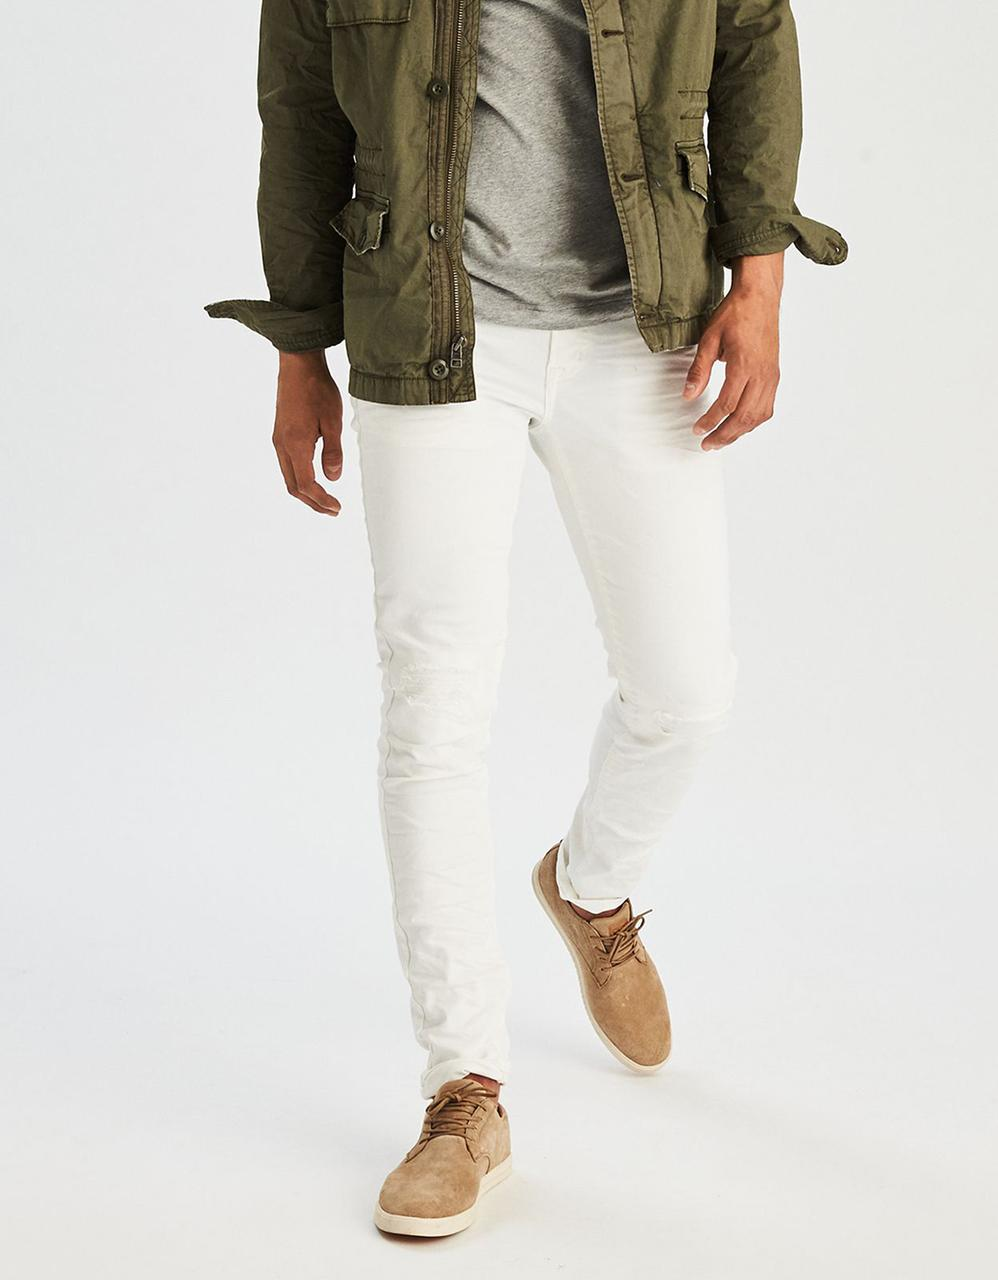 112f6af2 American Eagle Jeans, AE EXTREME FLEX SKINNY JEAN for Men at Aeo.in